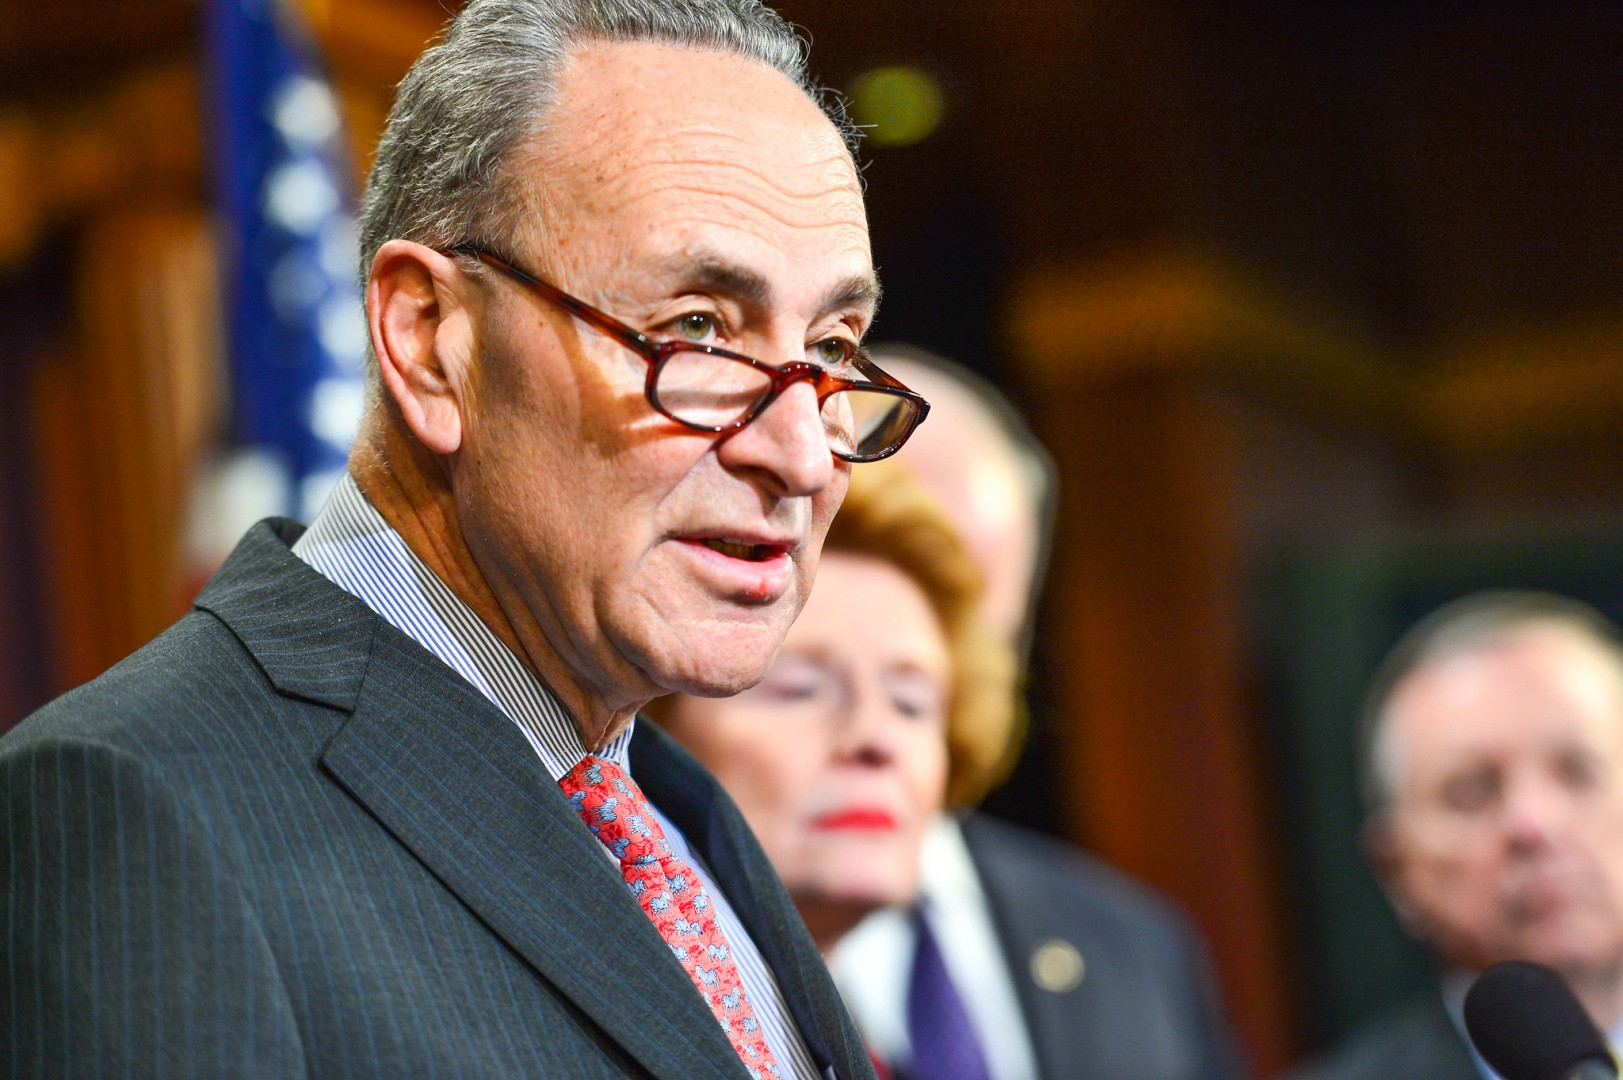 Senate Democrat leader Chuck Schumer said the crisis was